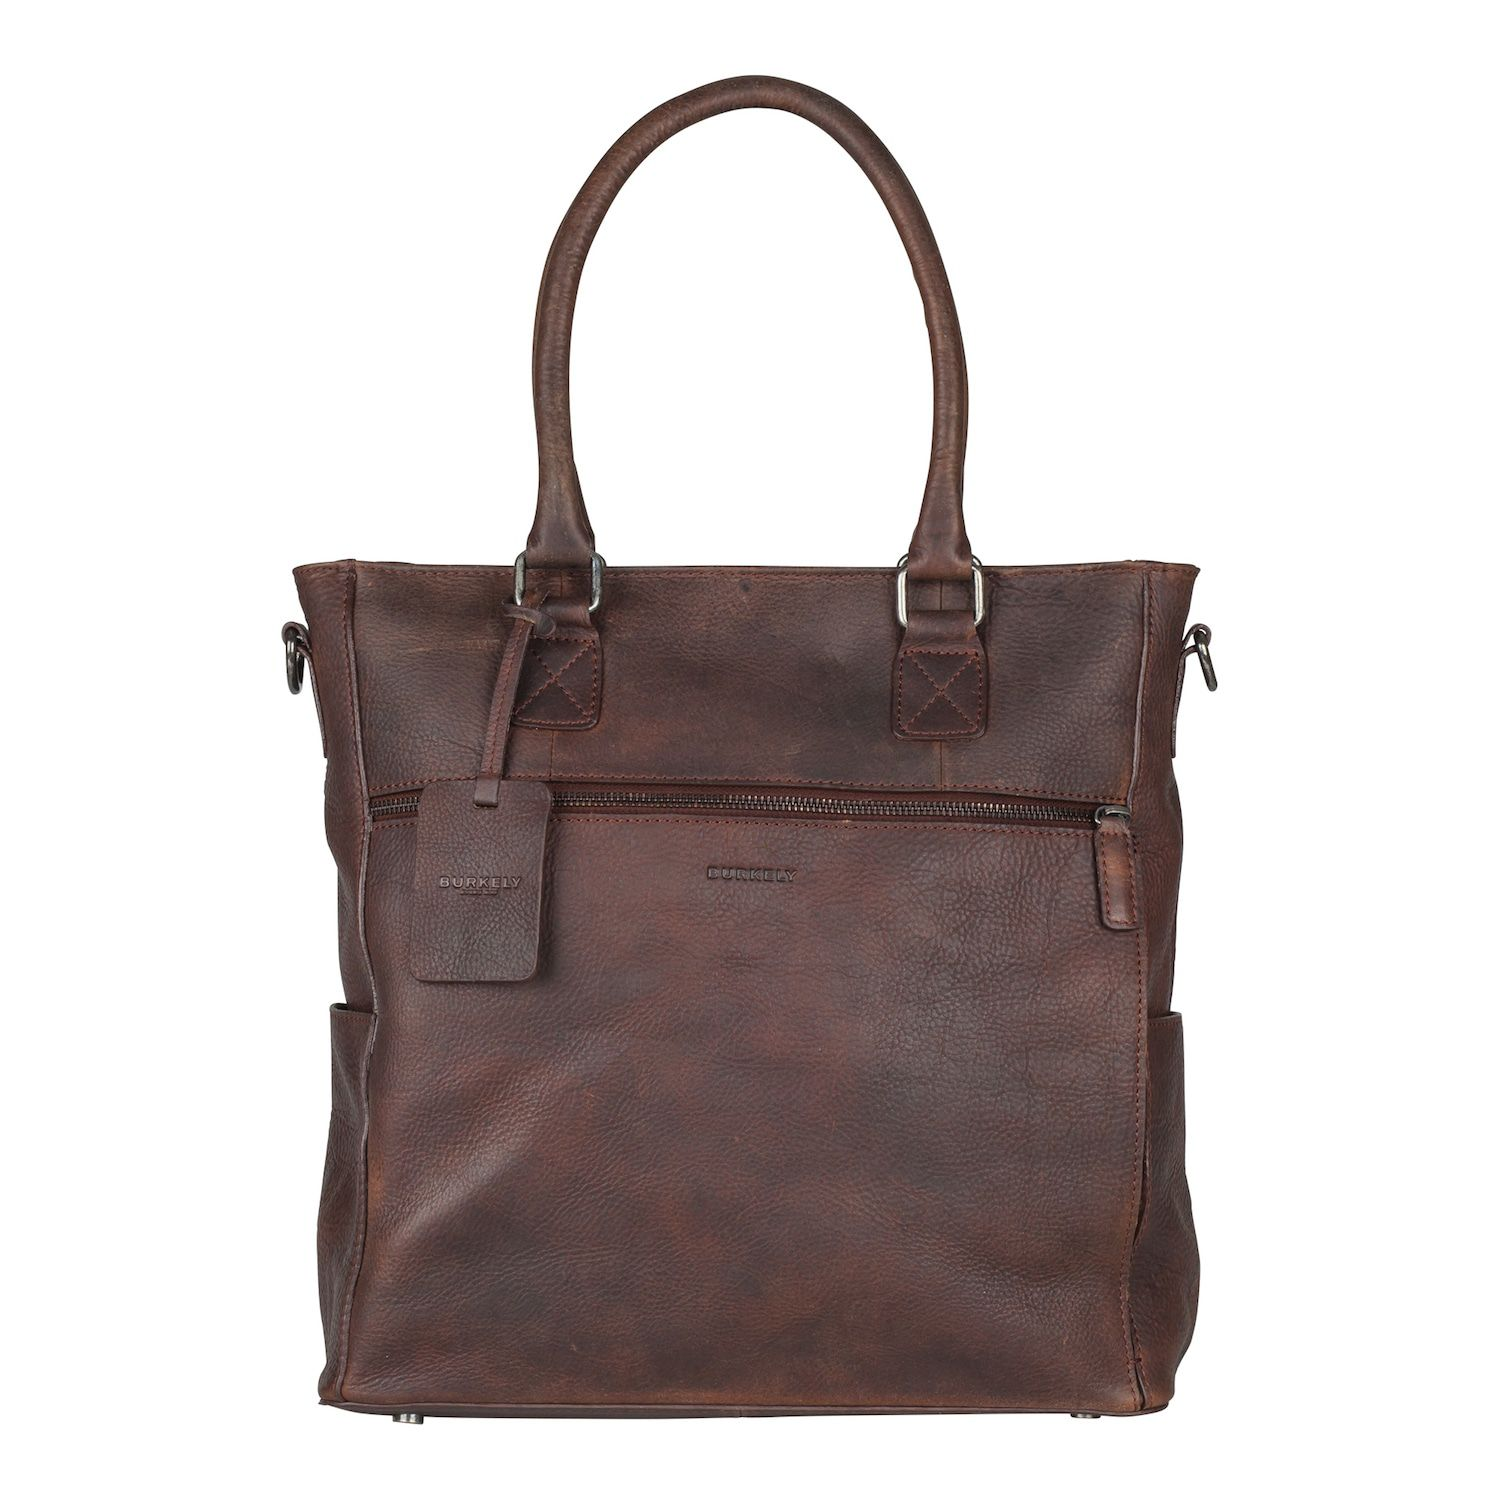 Burkely Antique Avery Shopper Brown 13.3 inch